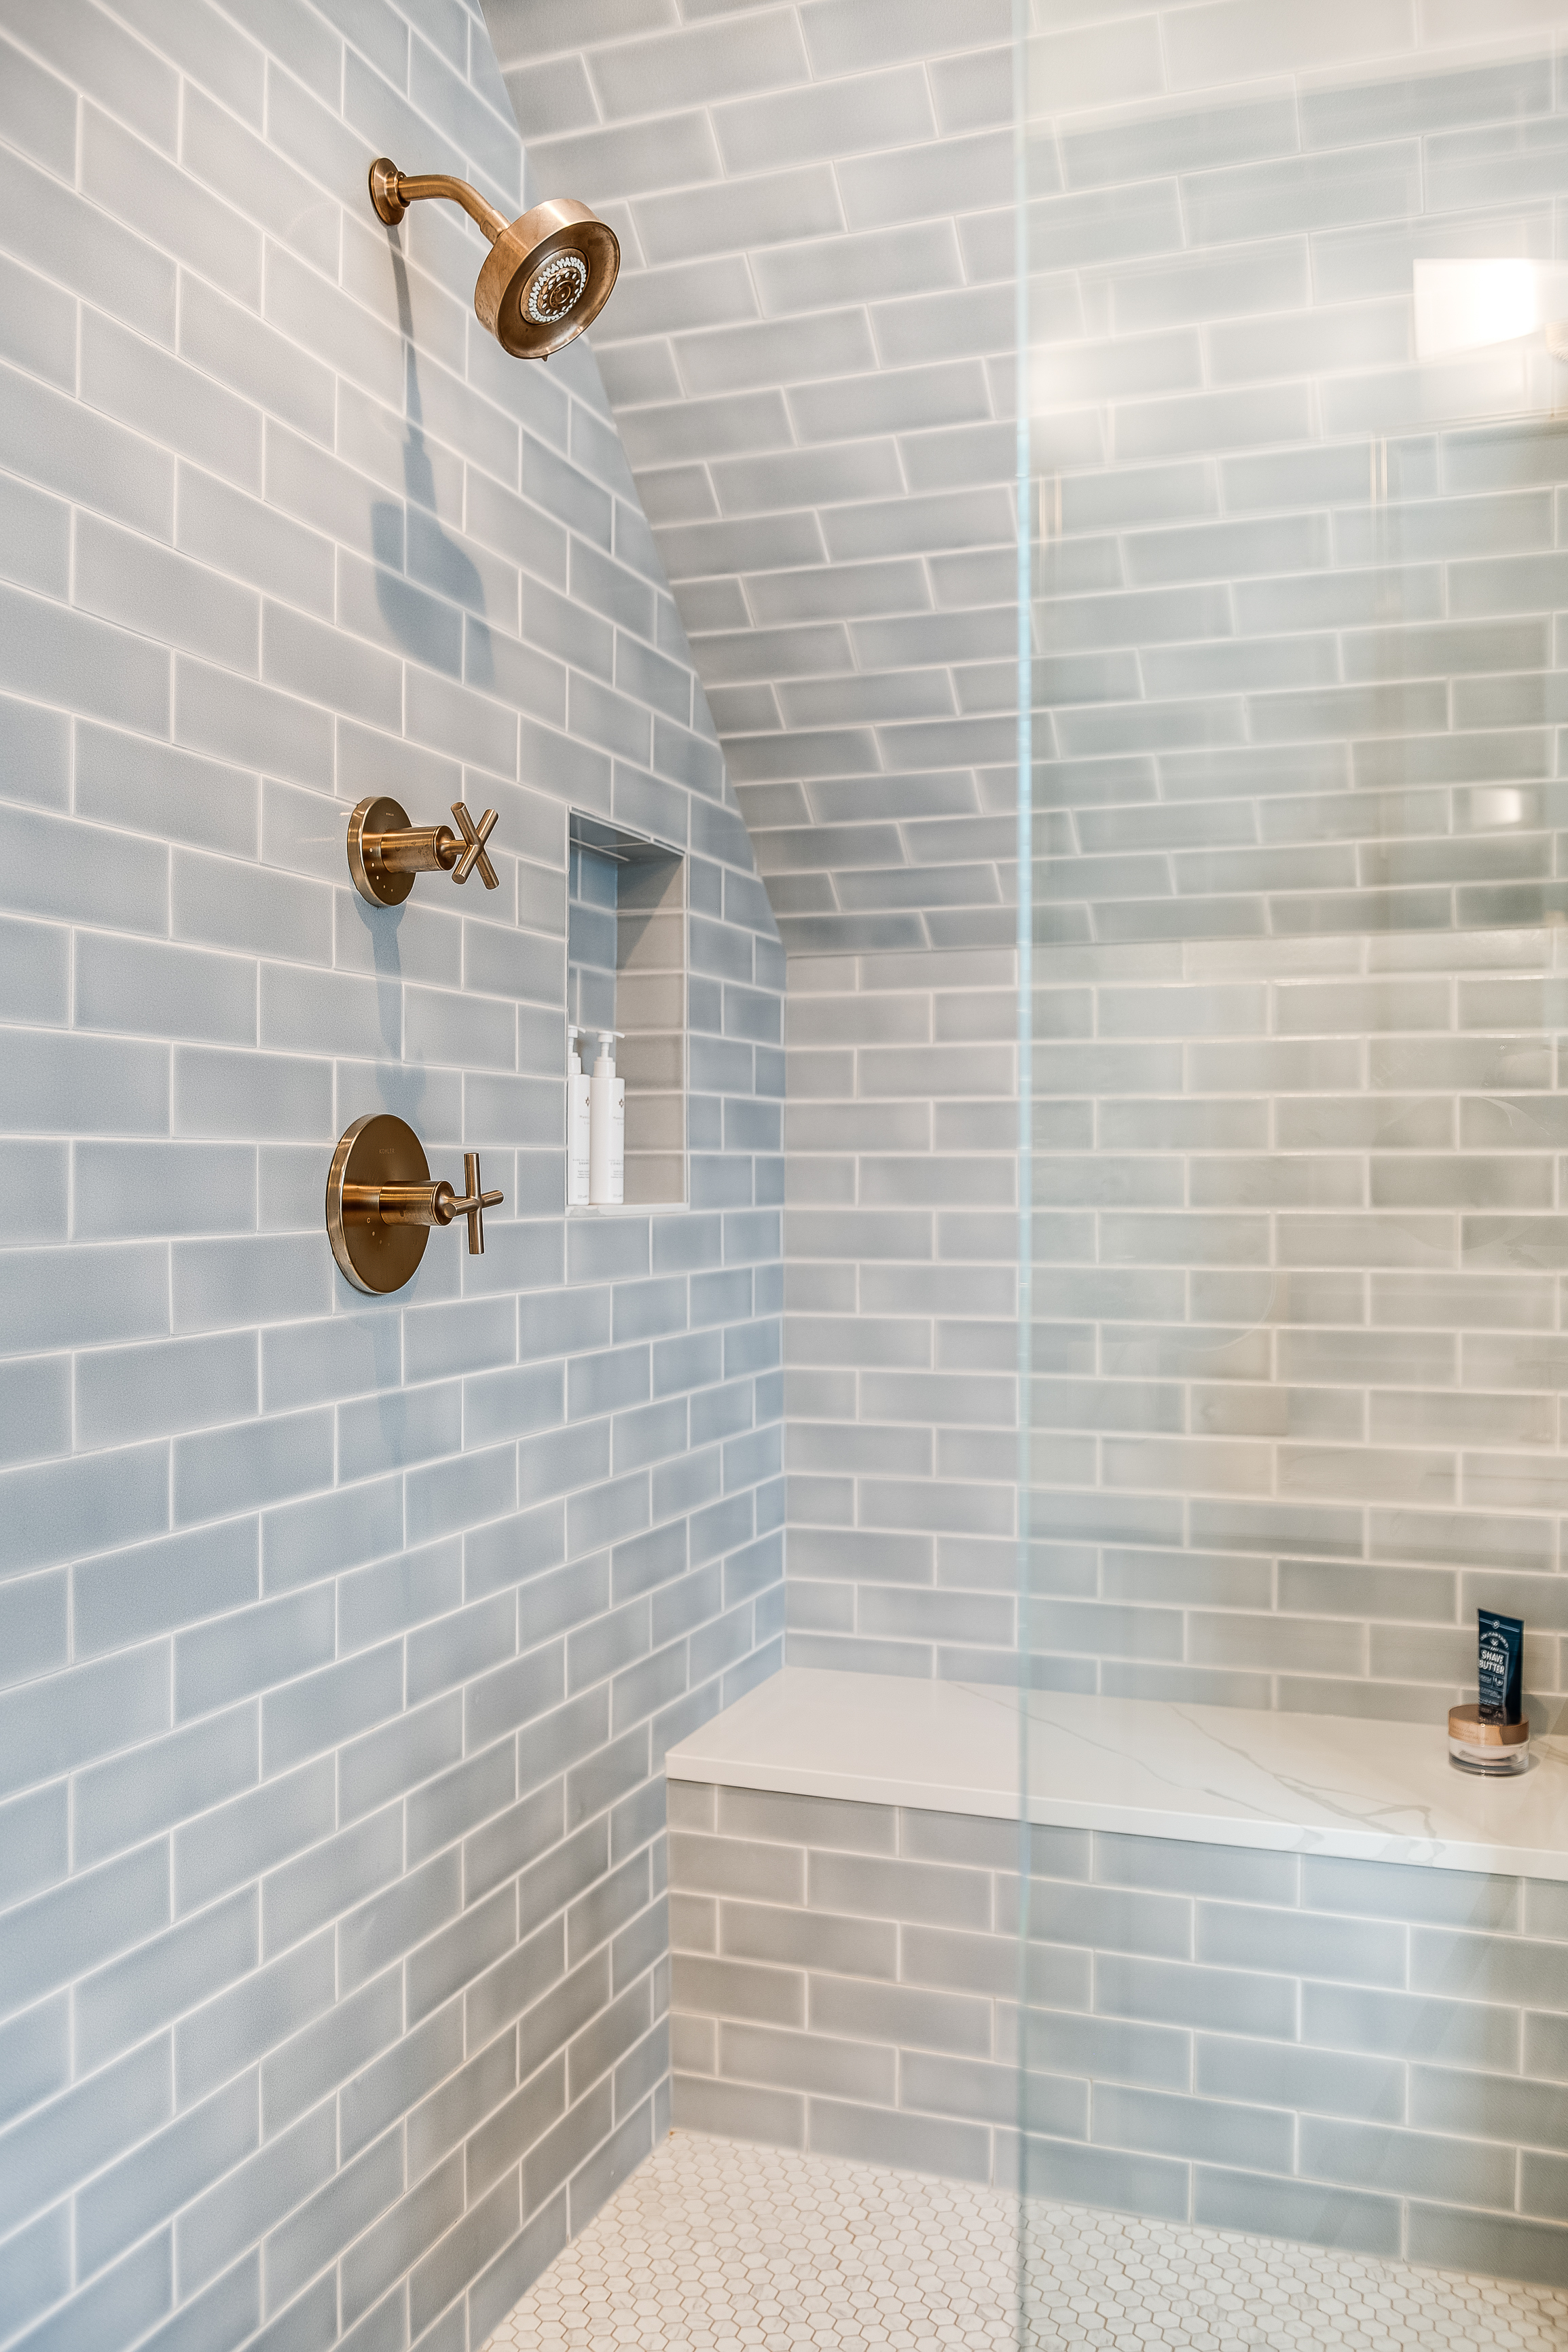 2018_img_q2_hi_res_RIGHTS_FIO_CREATIVE_PHOTO_cara_alyn_interiors_web_hi_resolution_bathroom_shower_surround_and-vanity_accent_wall_foggy_morning_ceramic_3x9_offset_glazed_edge_trim_SLANT_CEILING_FC217663_3.jpg?mtime=20190122165043#asset:433440